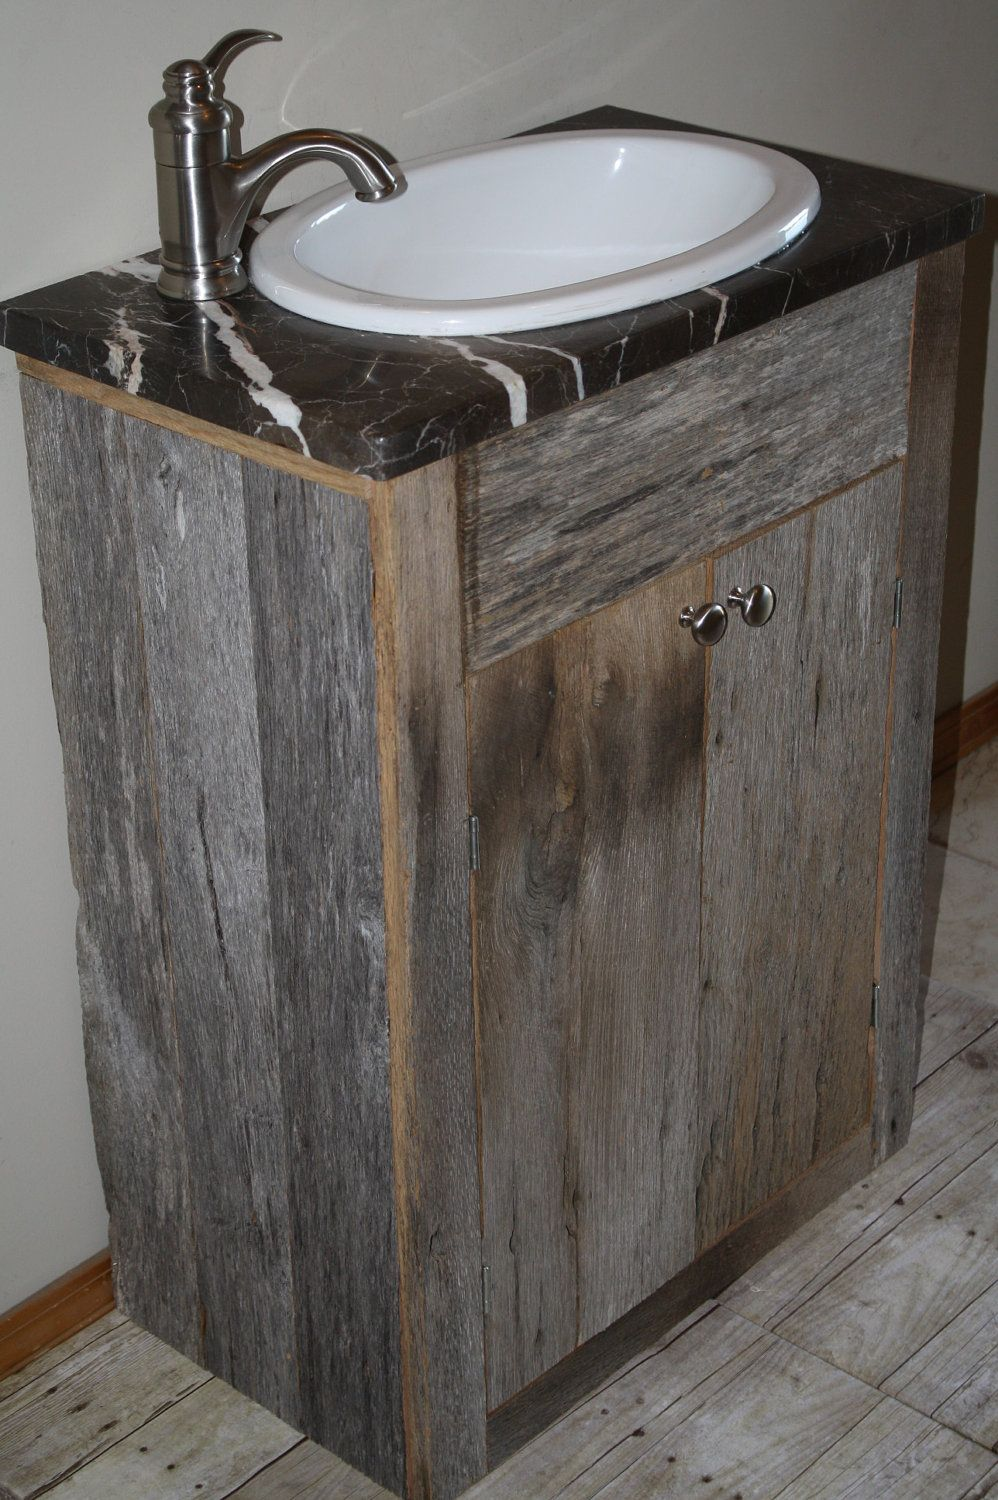 Custom Rustic Small Barn Wood Vanity Or Cabinet By Timelessjourney